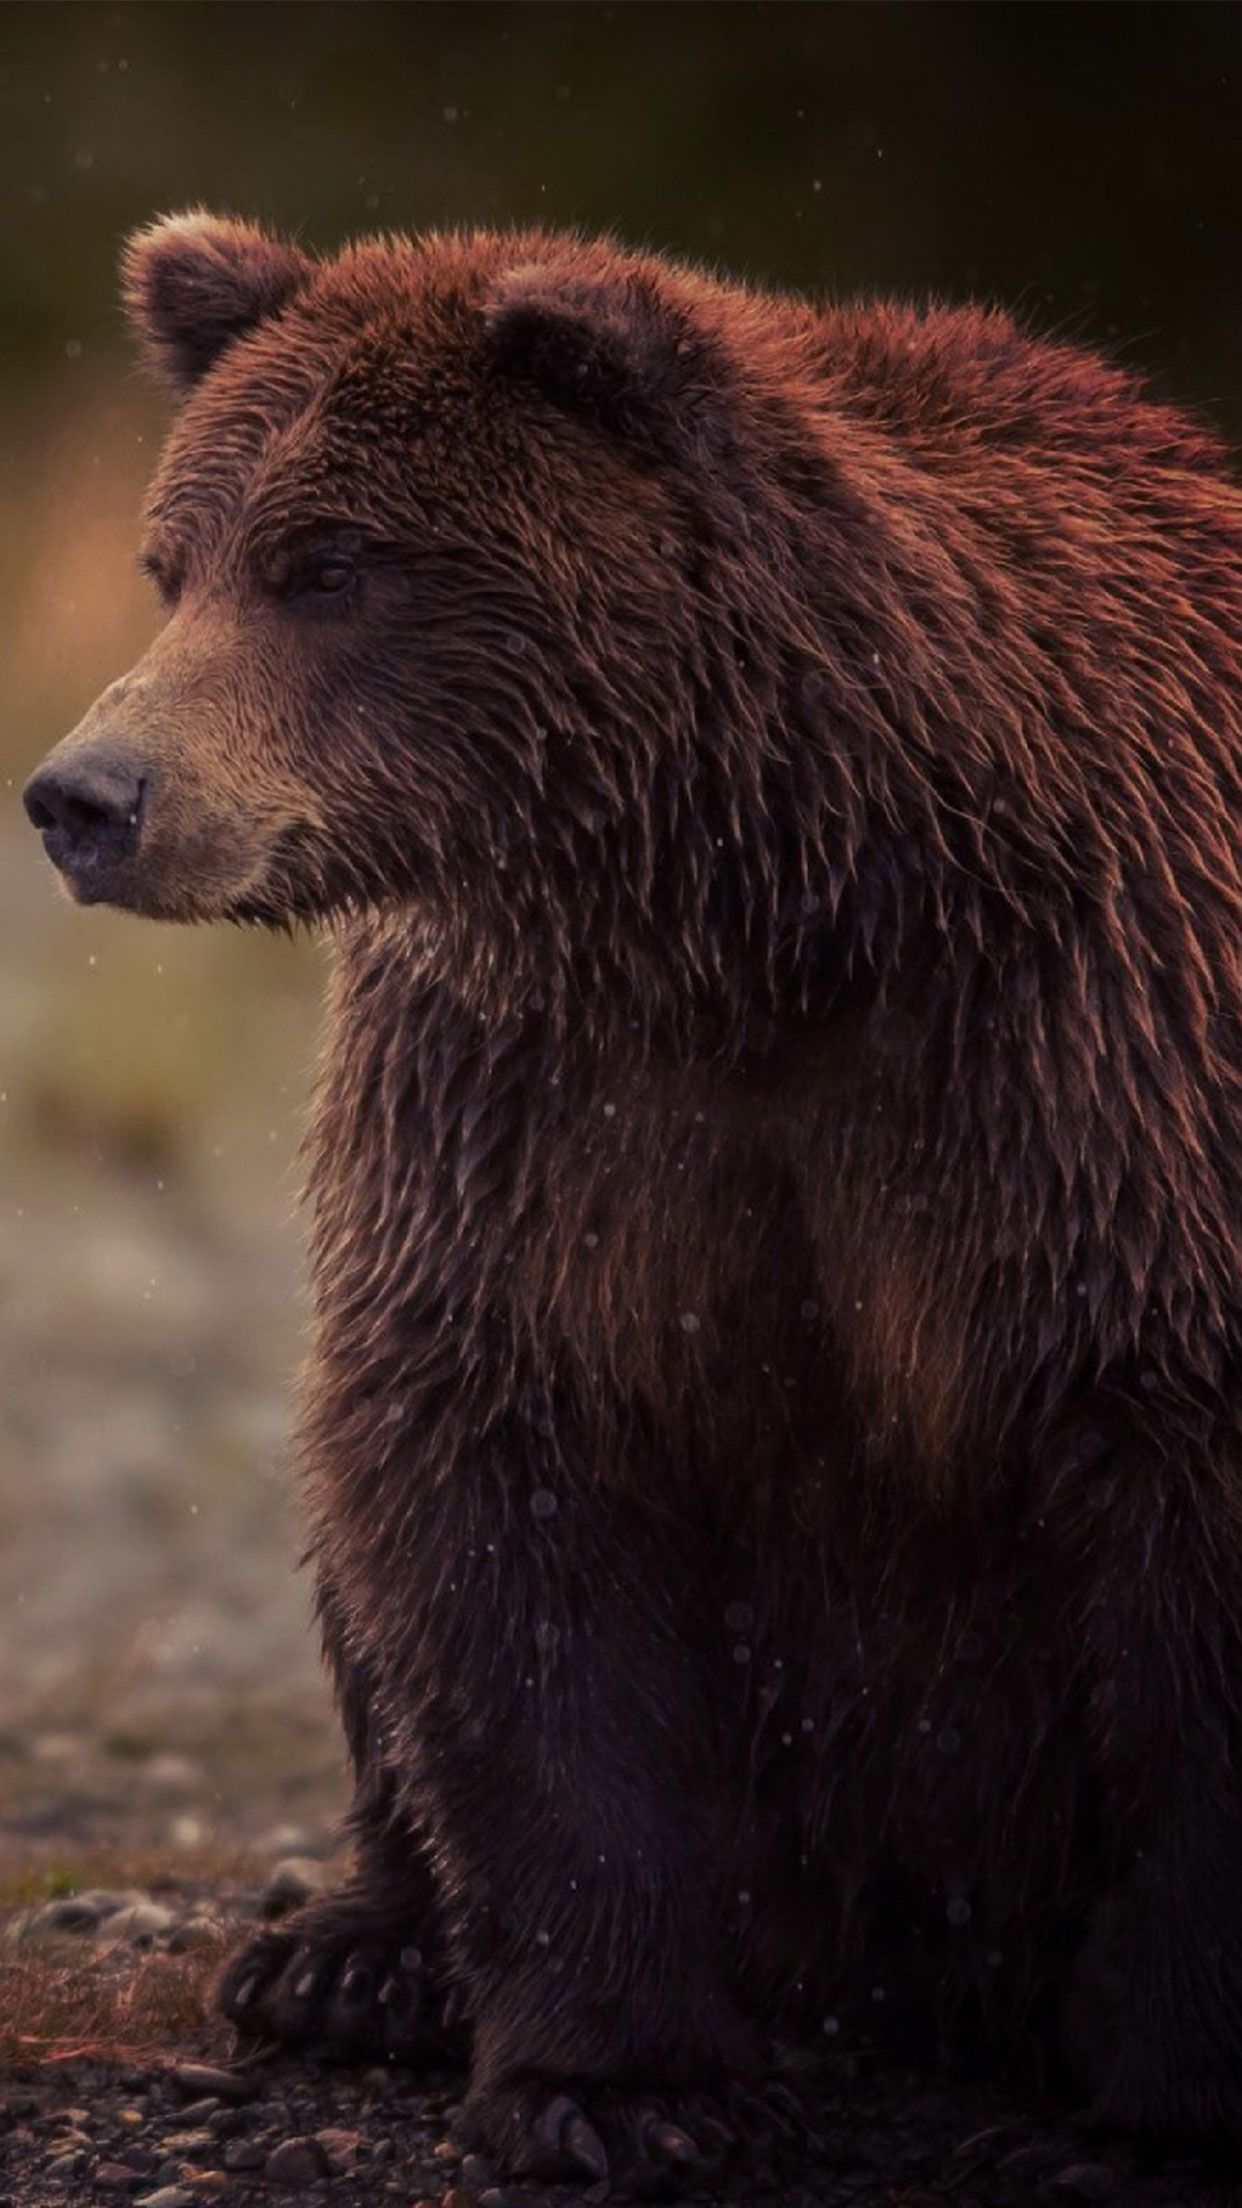 Brown Bear Animal Wallpaper #Iphone #android #bear #animal